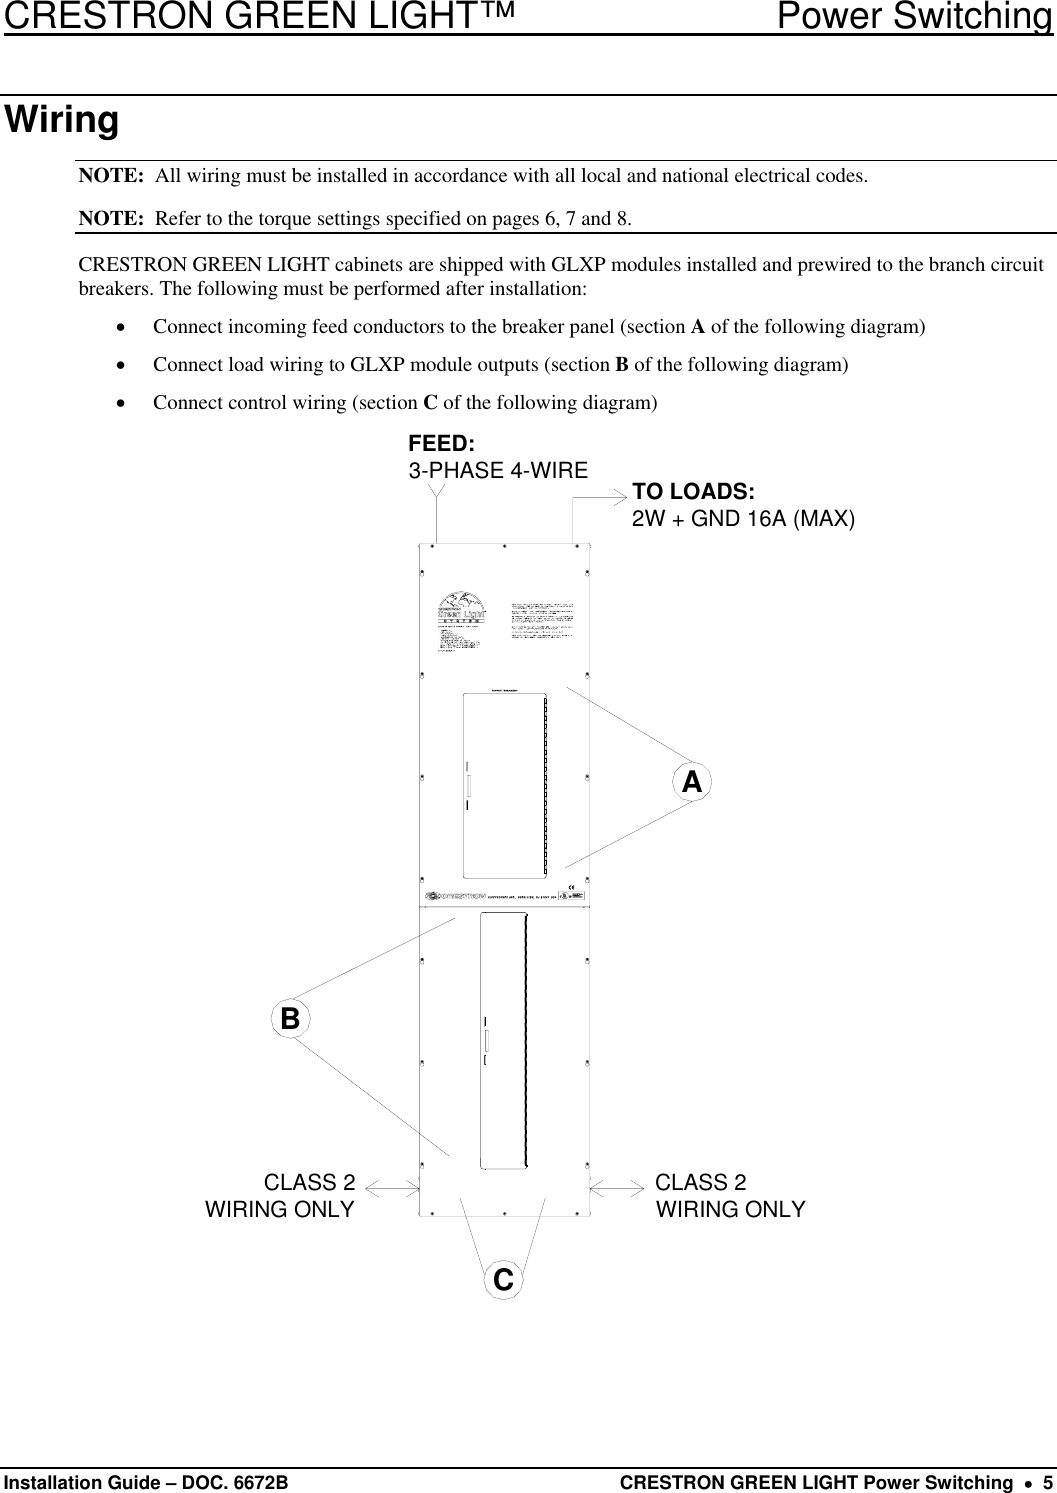 crestron electronic green light power switching users manual descriptionDiagram For Wiring Sw10 #14